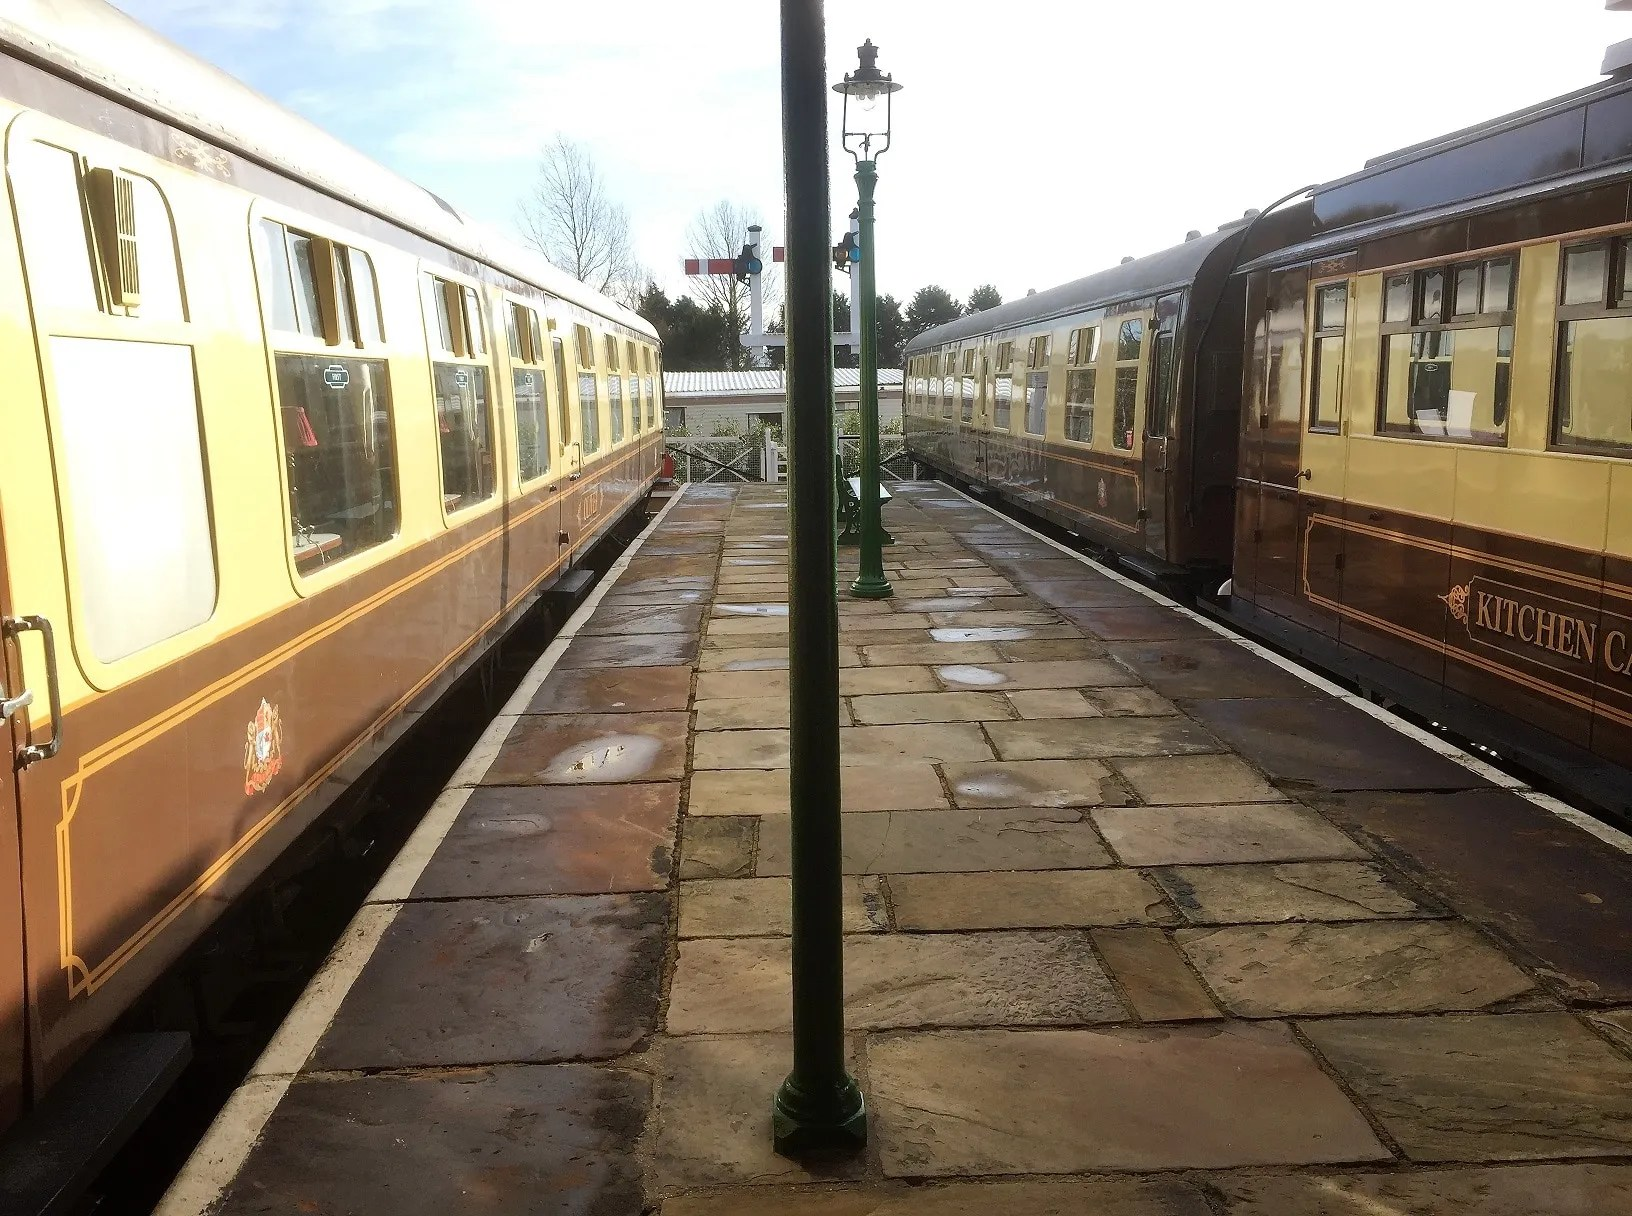 British Railways Mark 1 converted railway carriages CK M15626 and FO S3065